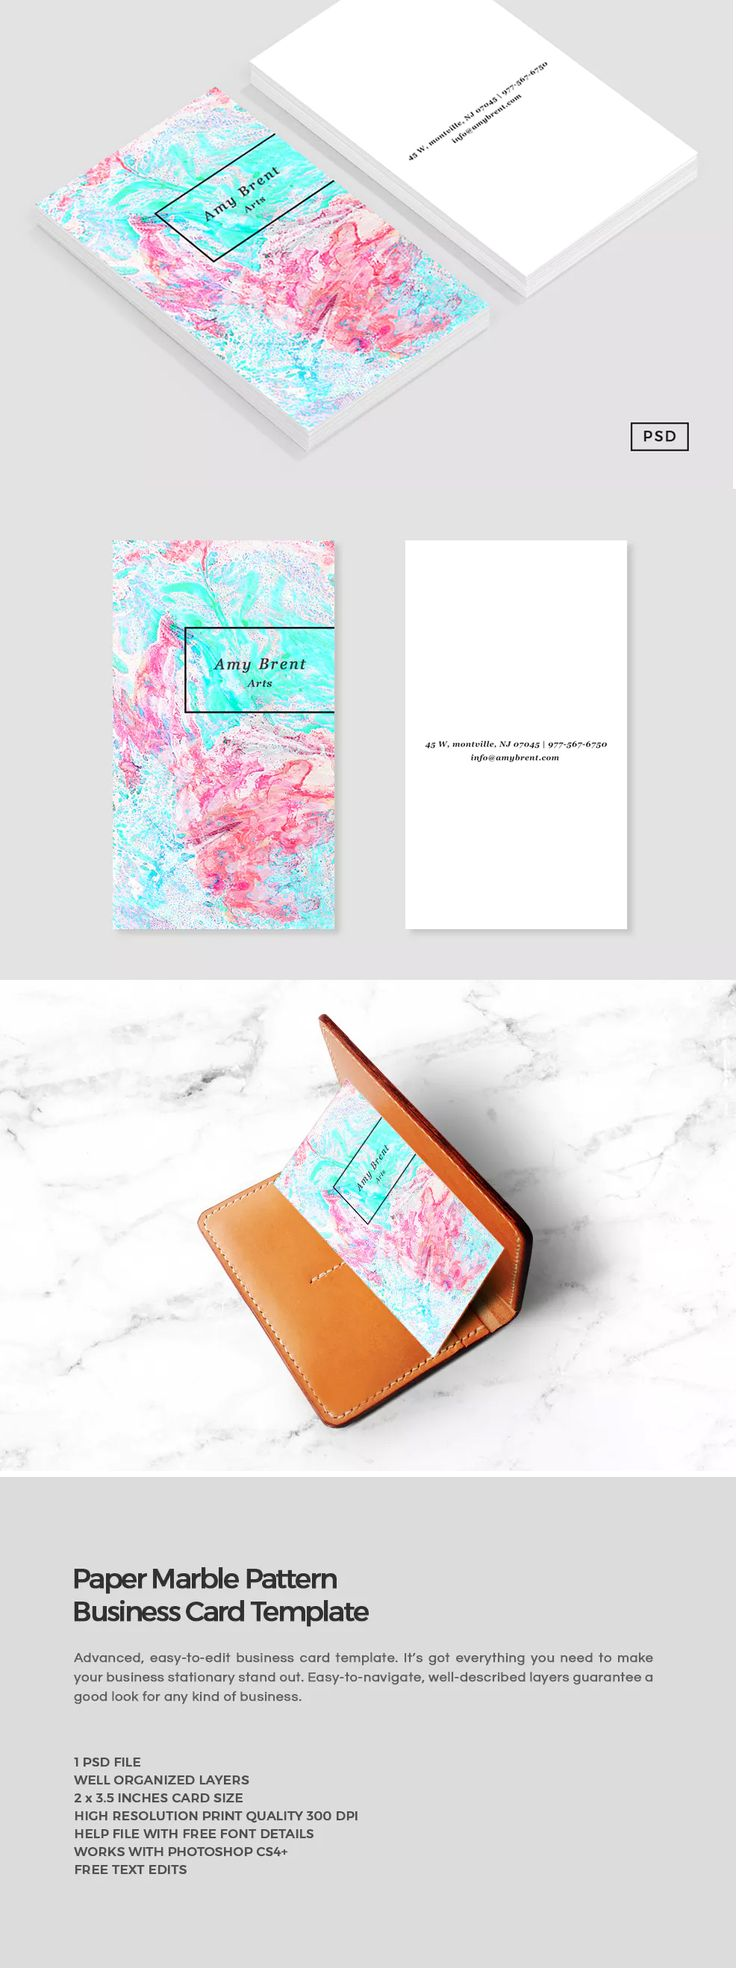 137 Best Business Card Template Images On Pinterest Business Card